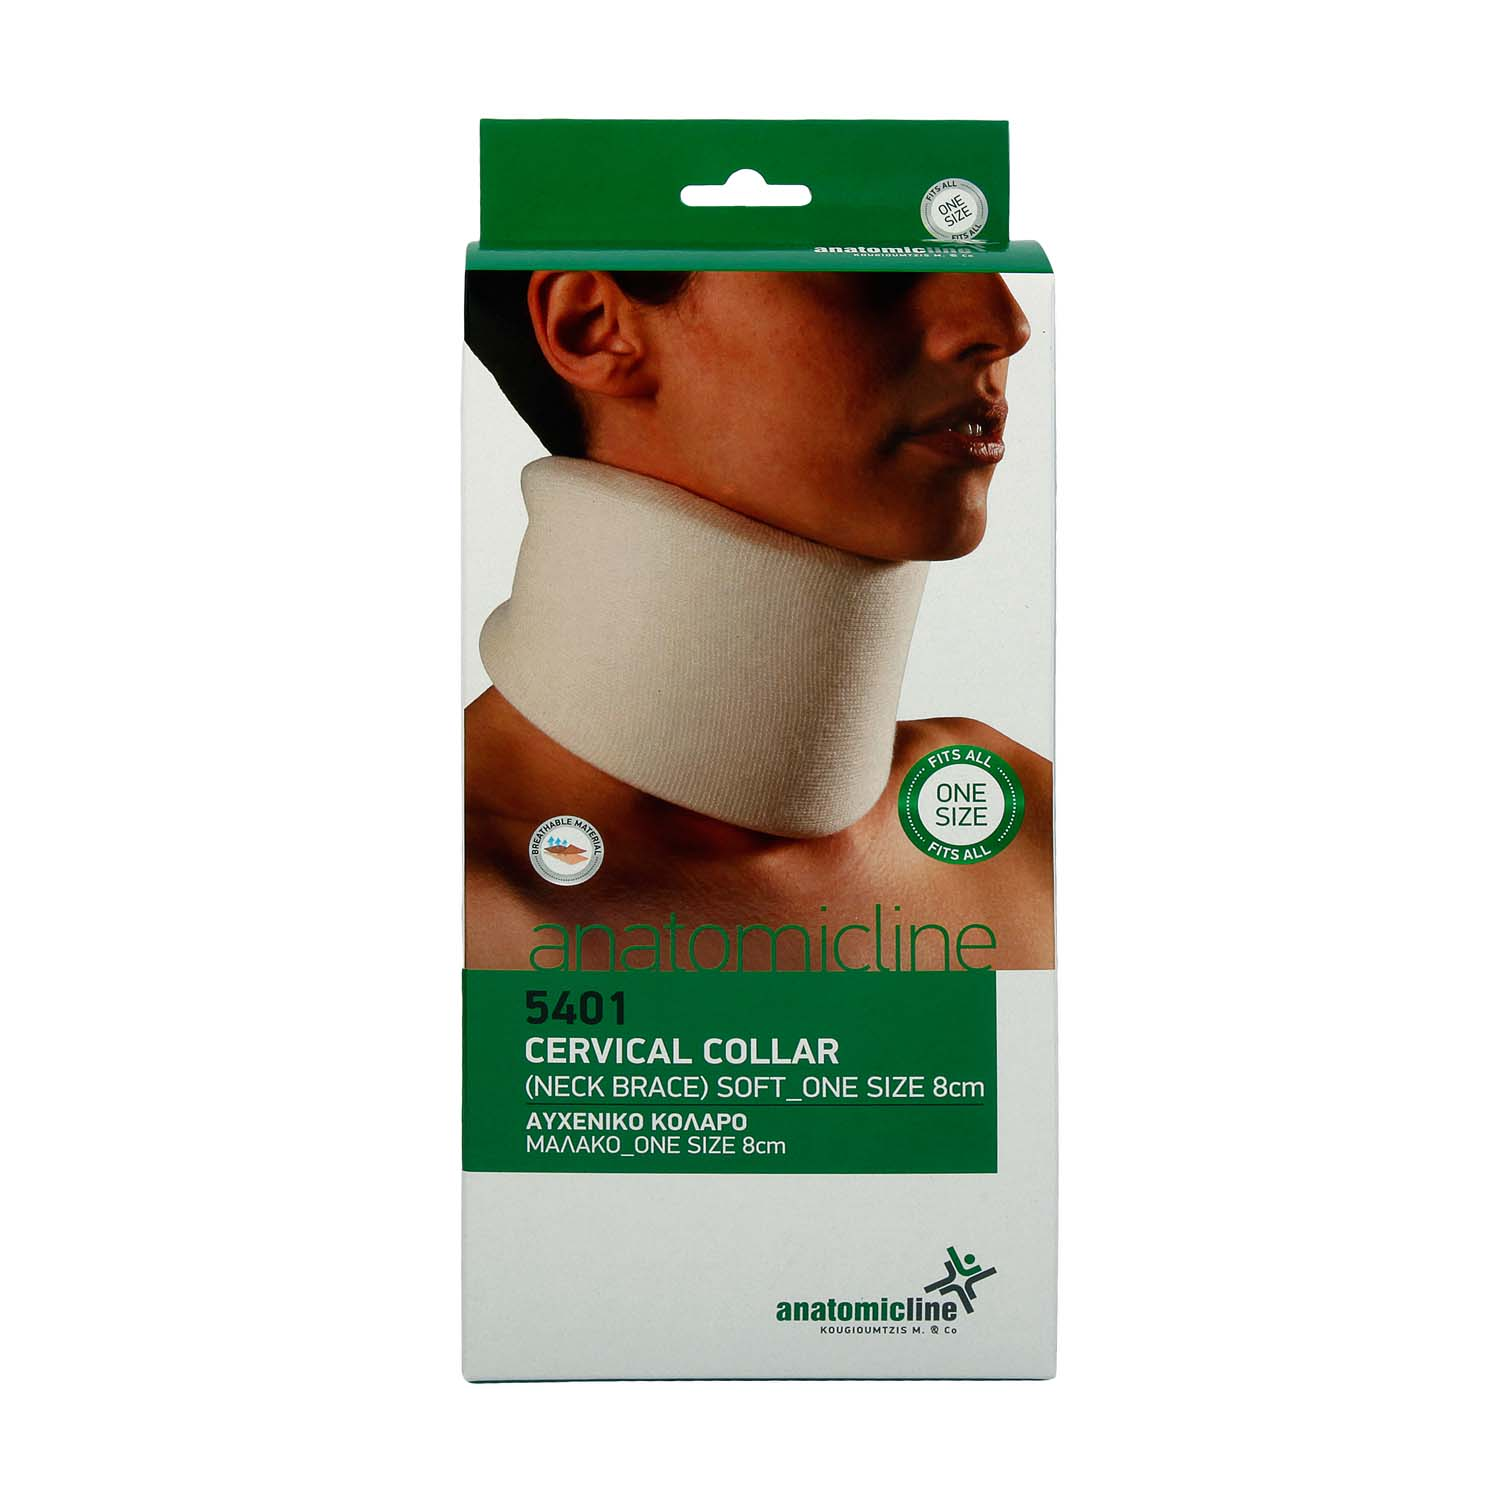 Cervical collar (Neck brace) - soft